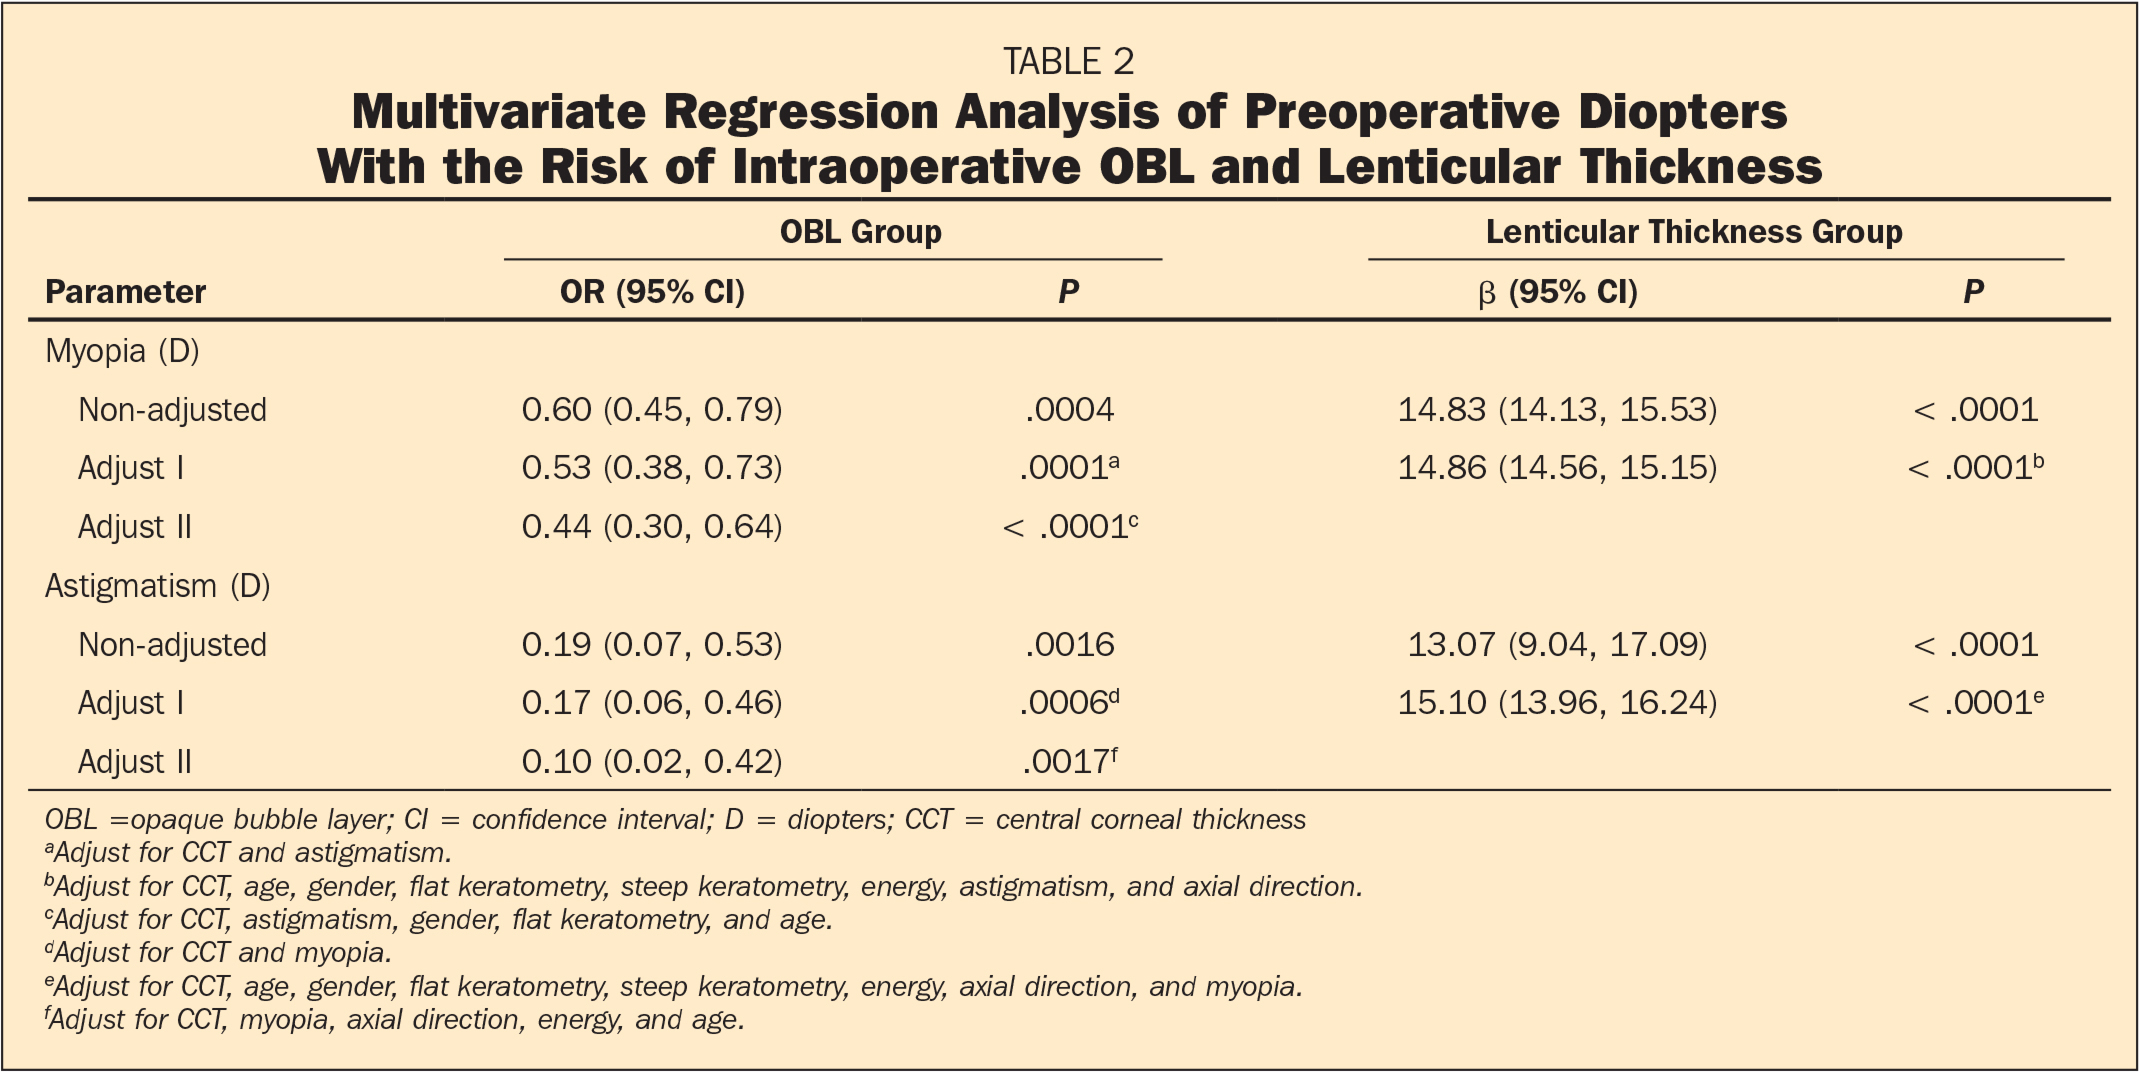 Multivariate Regression Analysis of Preoperative Diopters With the Risk of Intraoperative OBL and Lenticular Thickness